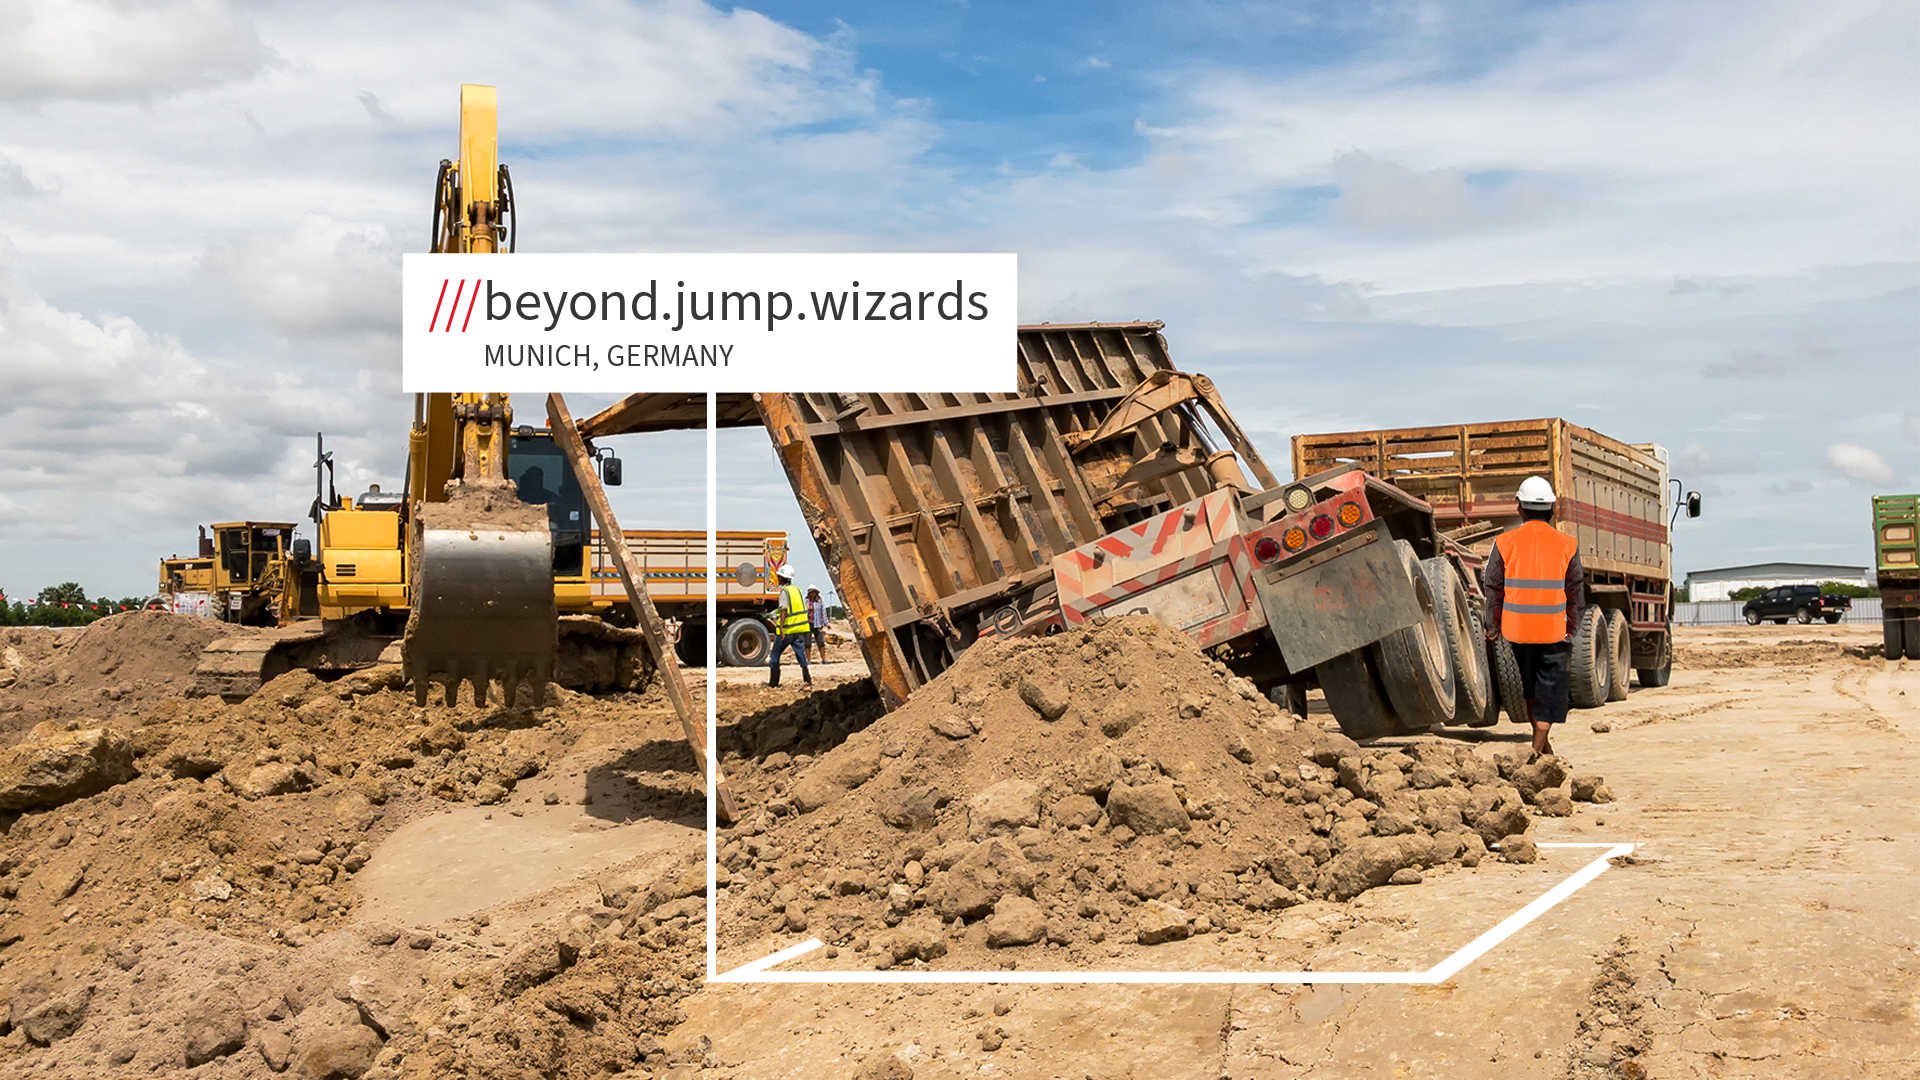 Construction site at what3words address beyond.jump.wizard